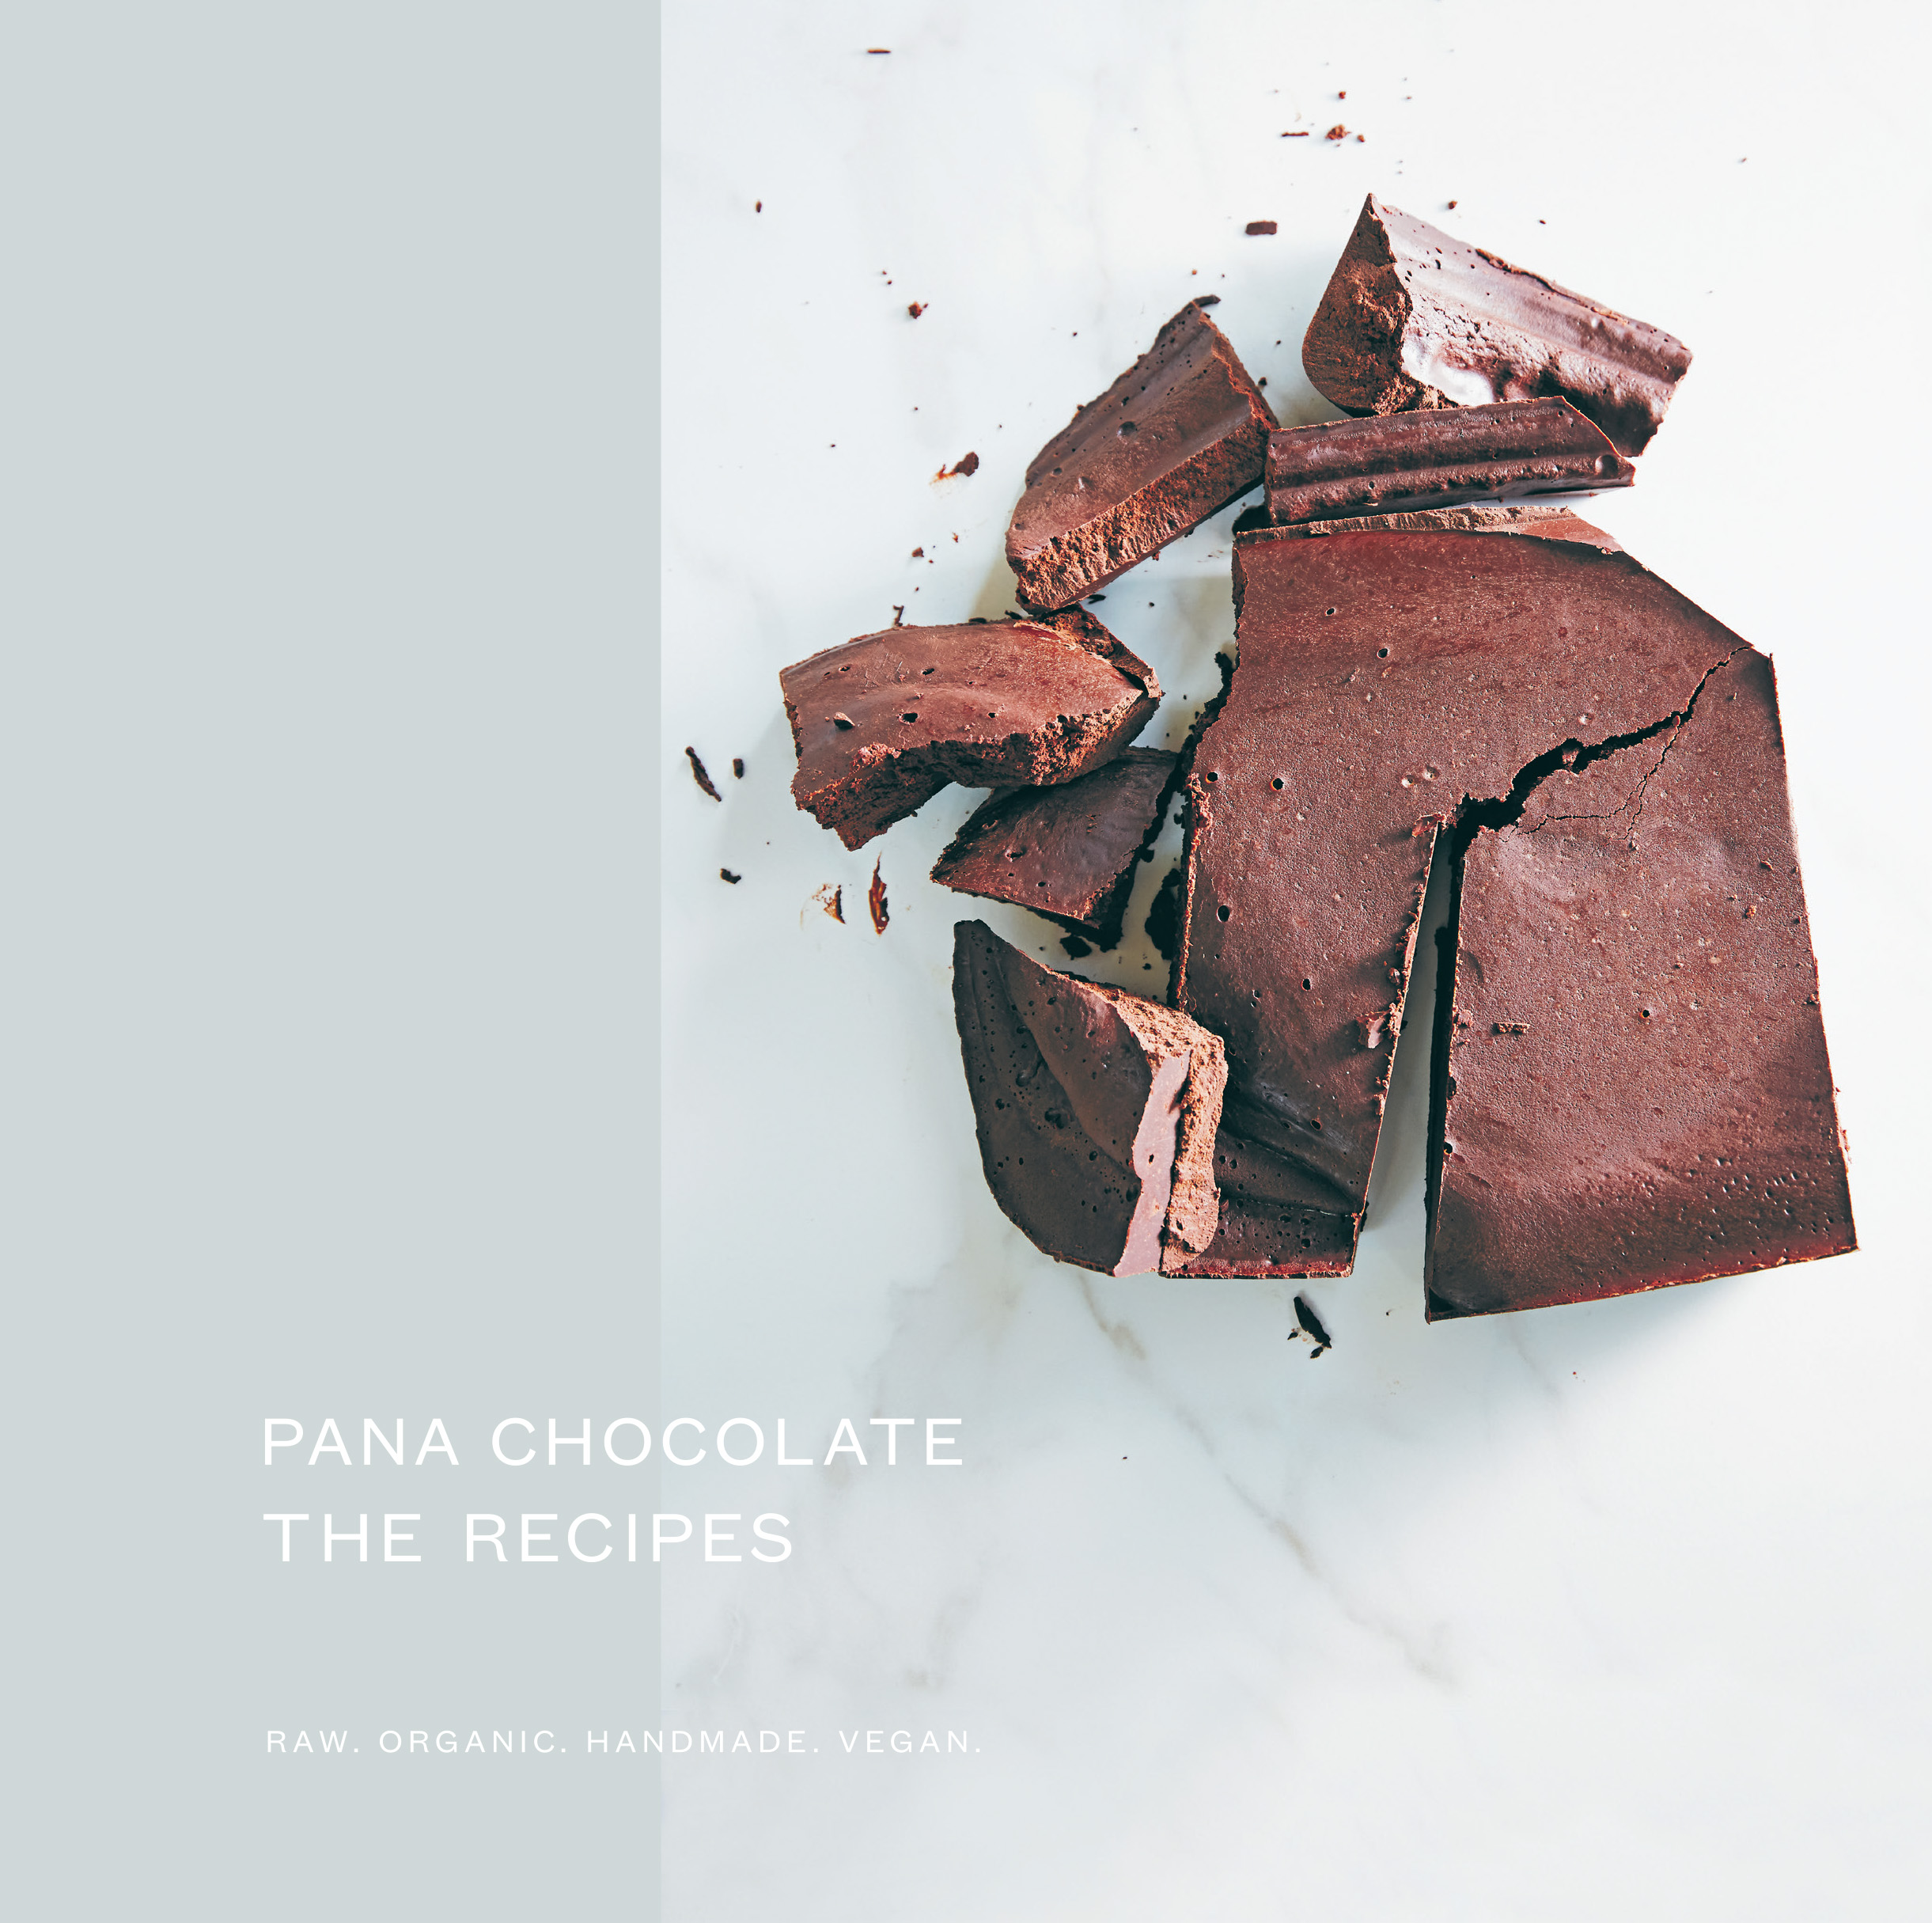 Pana Chocolate, The Recipes